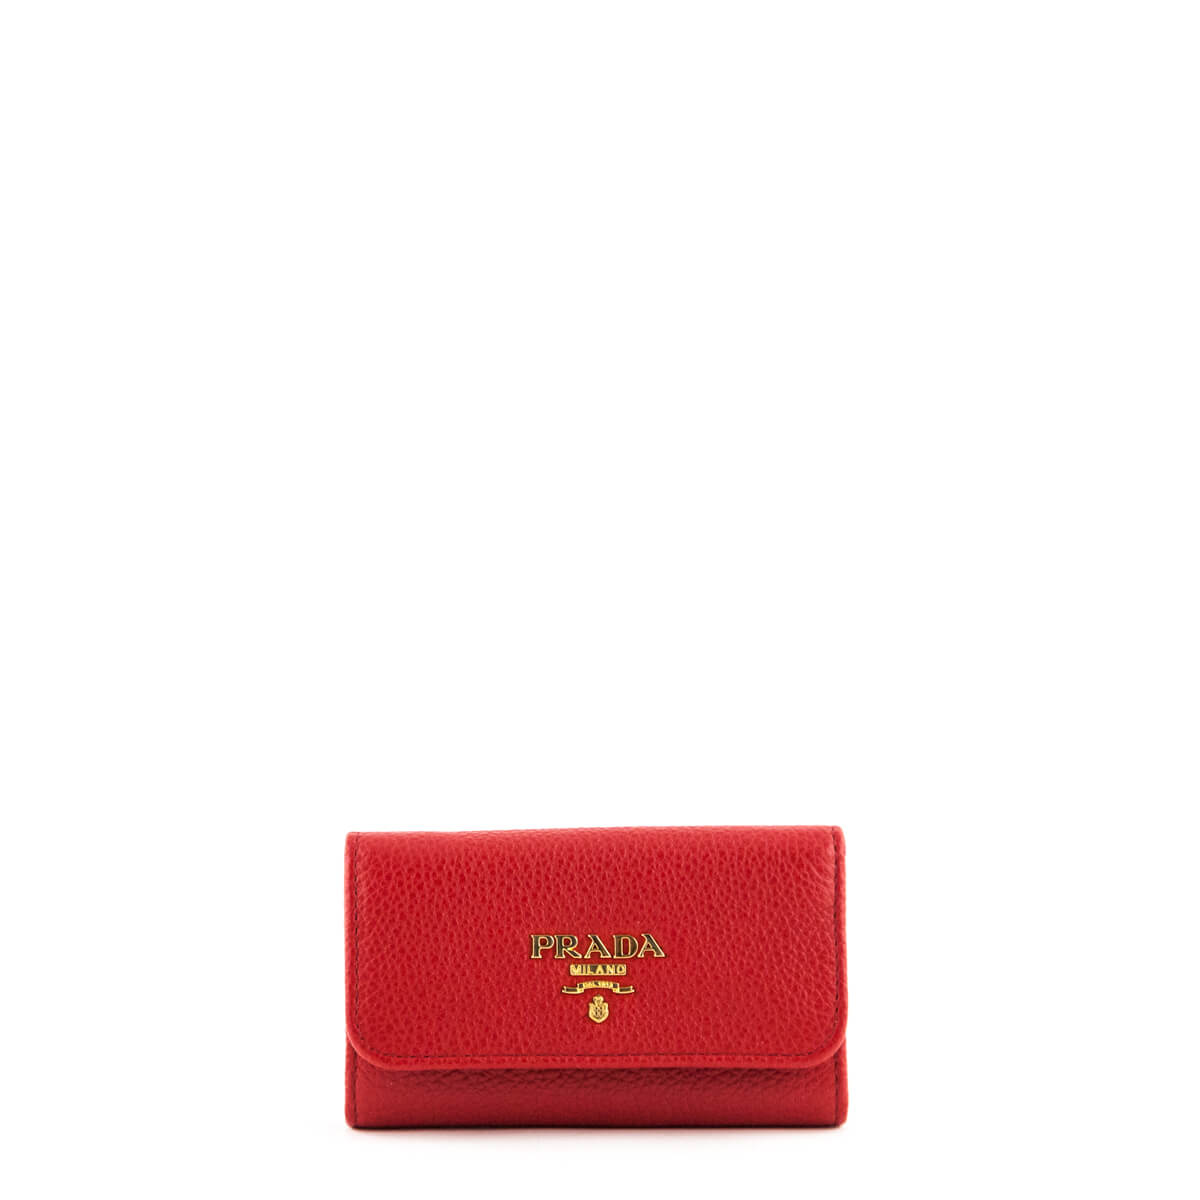 57f161e1835b69 Prada Red Vitello Grain Key Holder - LOVE that BAG - Preowned Authentic  Designer Handbags ...